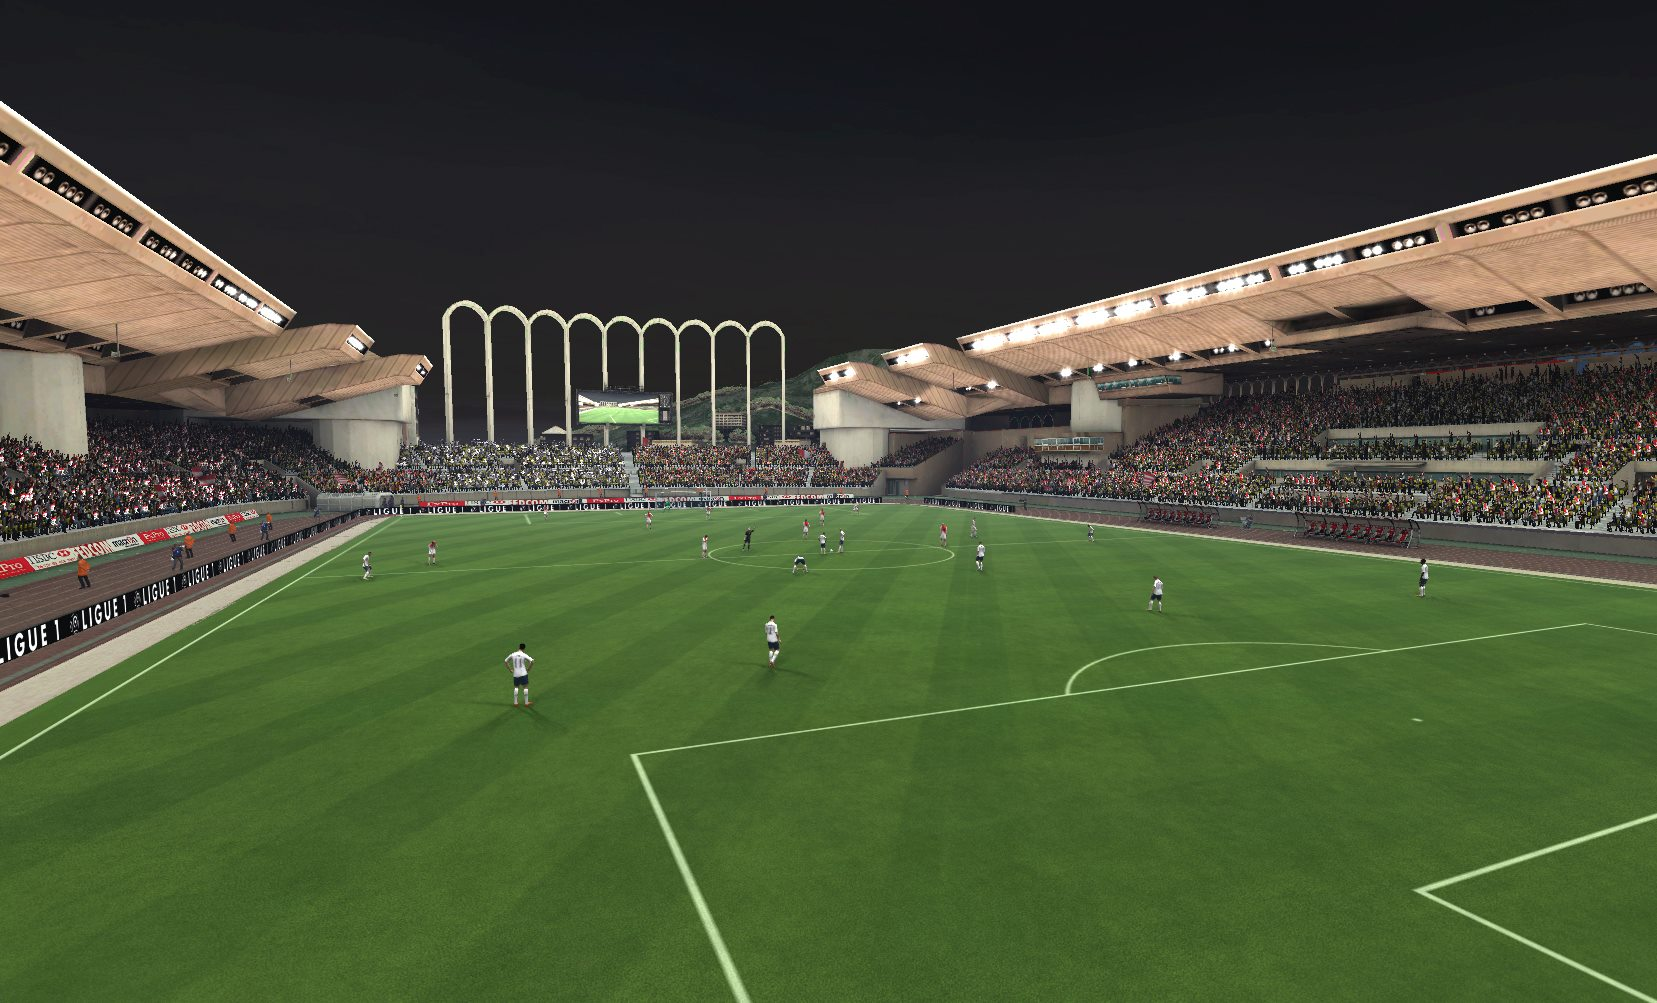 FIFA 14 | ModdingWay Mod Version 3 7 0 Released | Sweetpatch TV